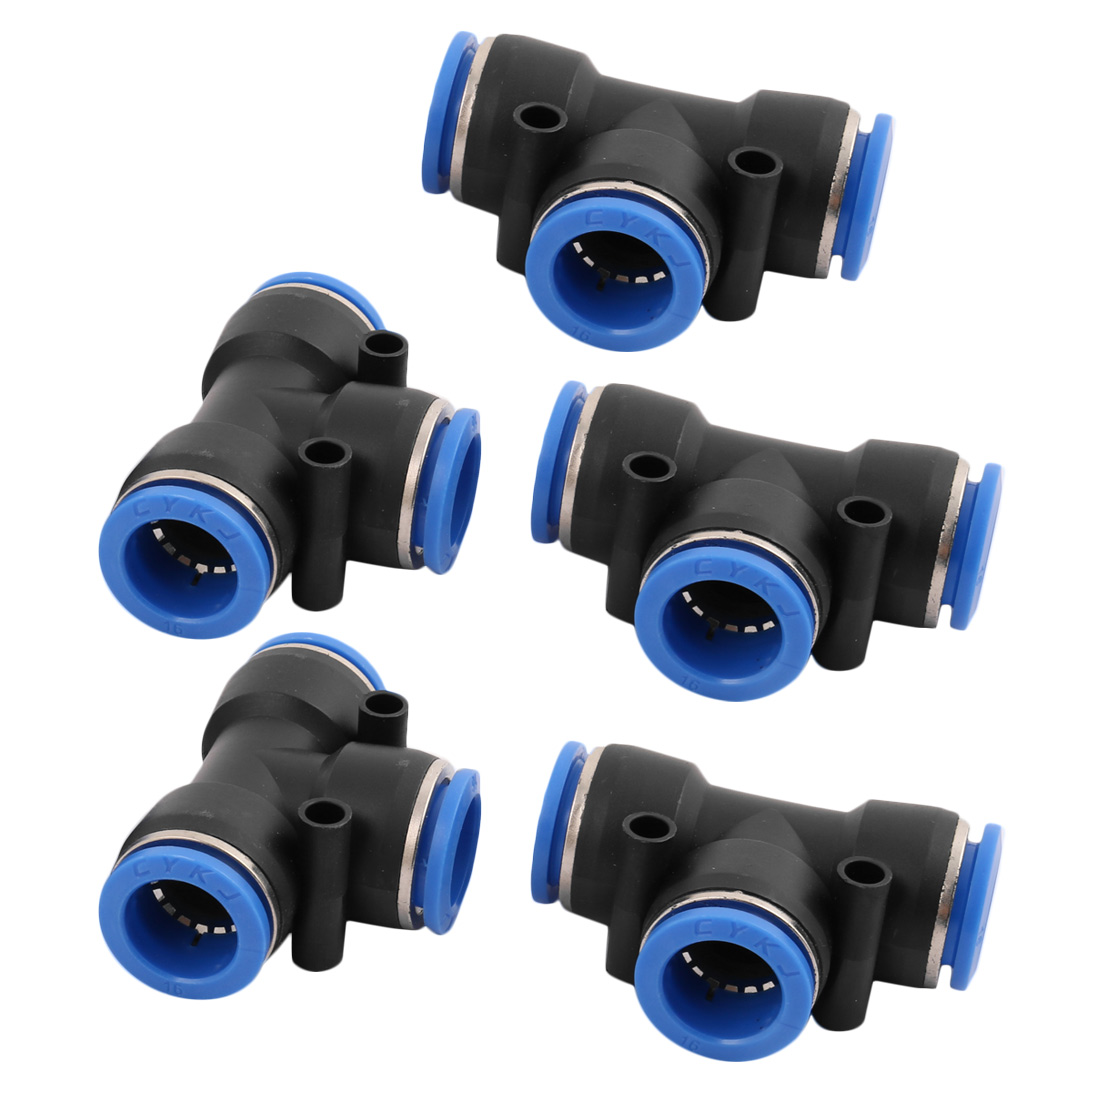 5Pcs 16mm Dia T Type 3 Ways Tube Hose Pneumatic Air Quick Fitting Push In Connector